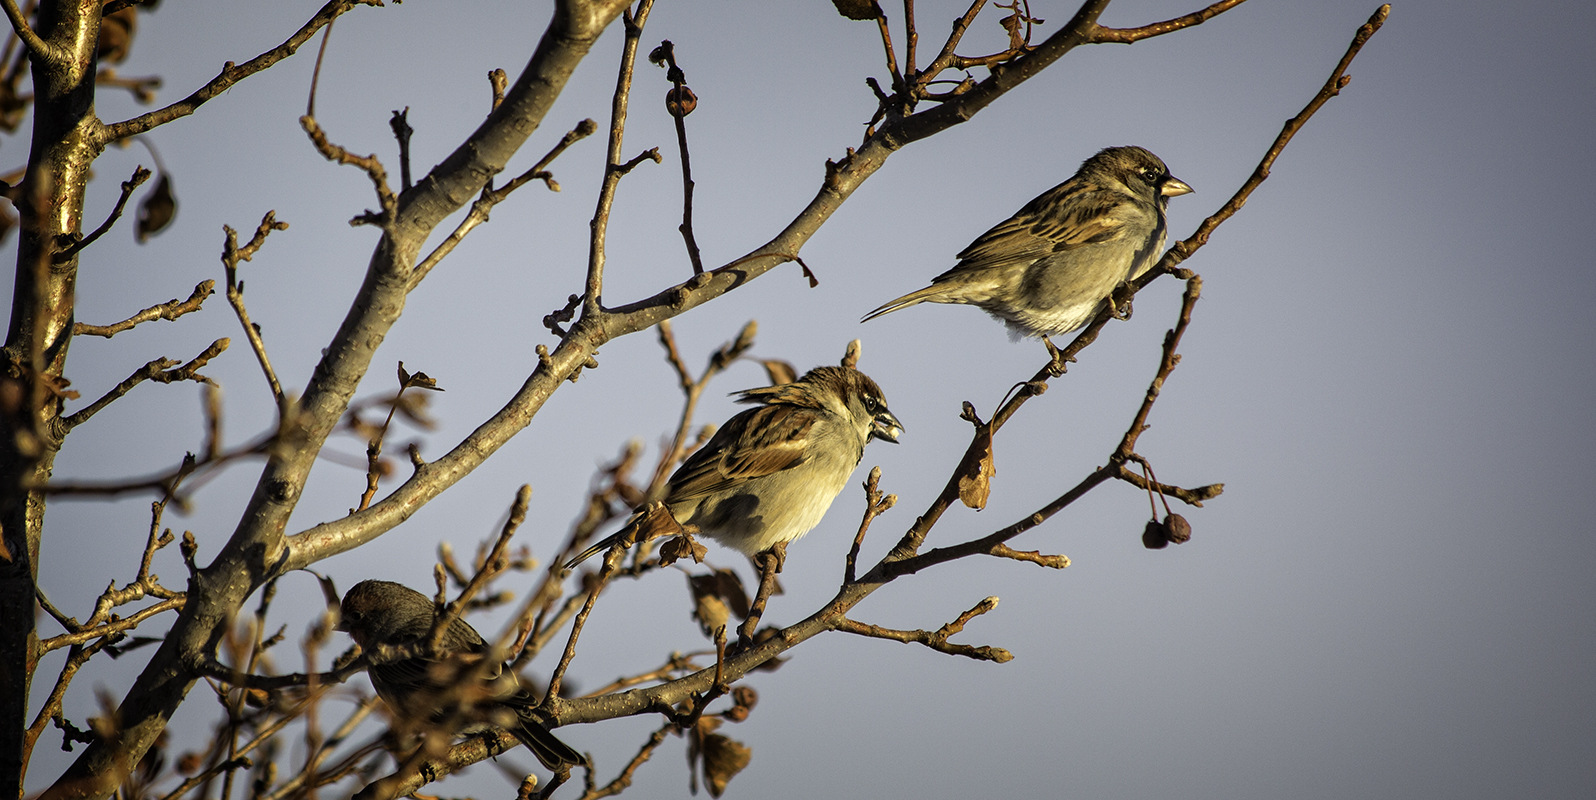 Three Finches sit on a tree in Golden Hour light, waiting their turn at the feeder.